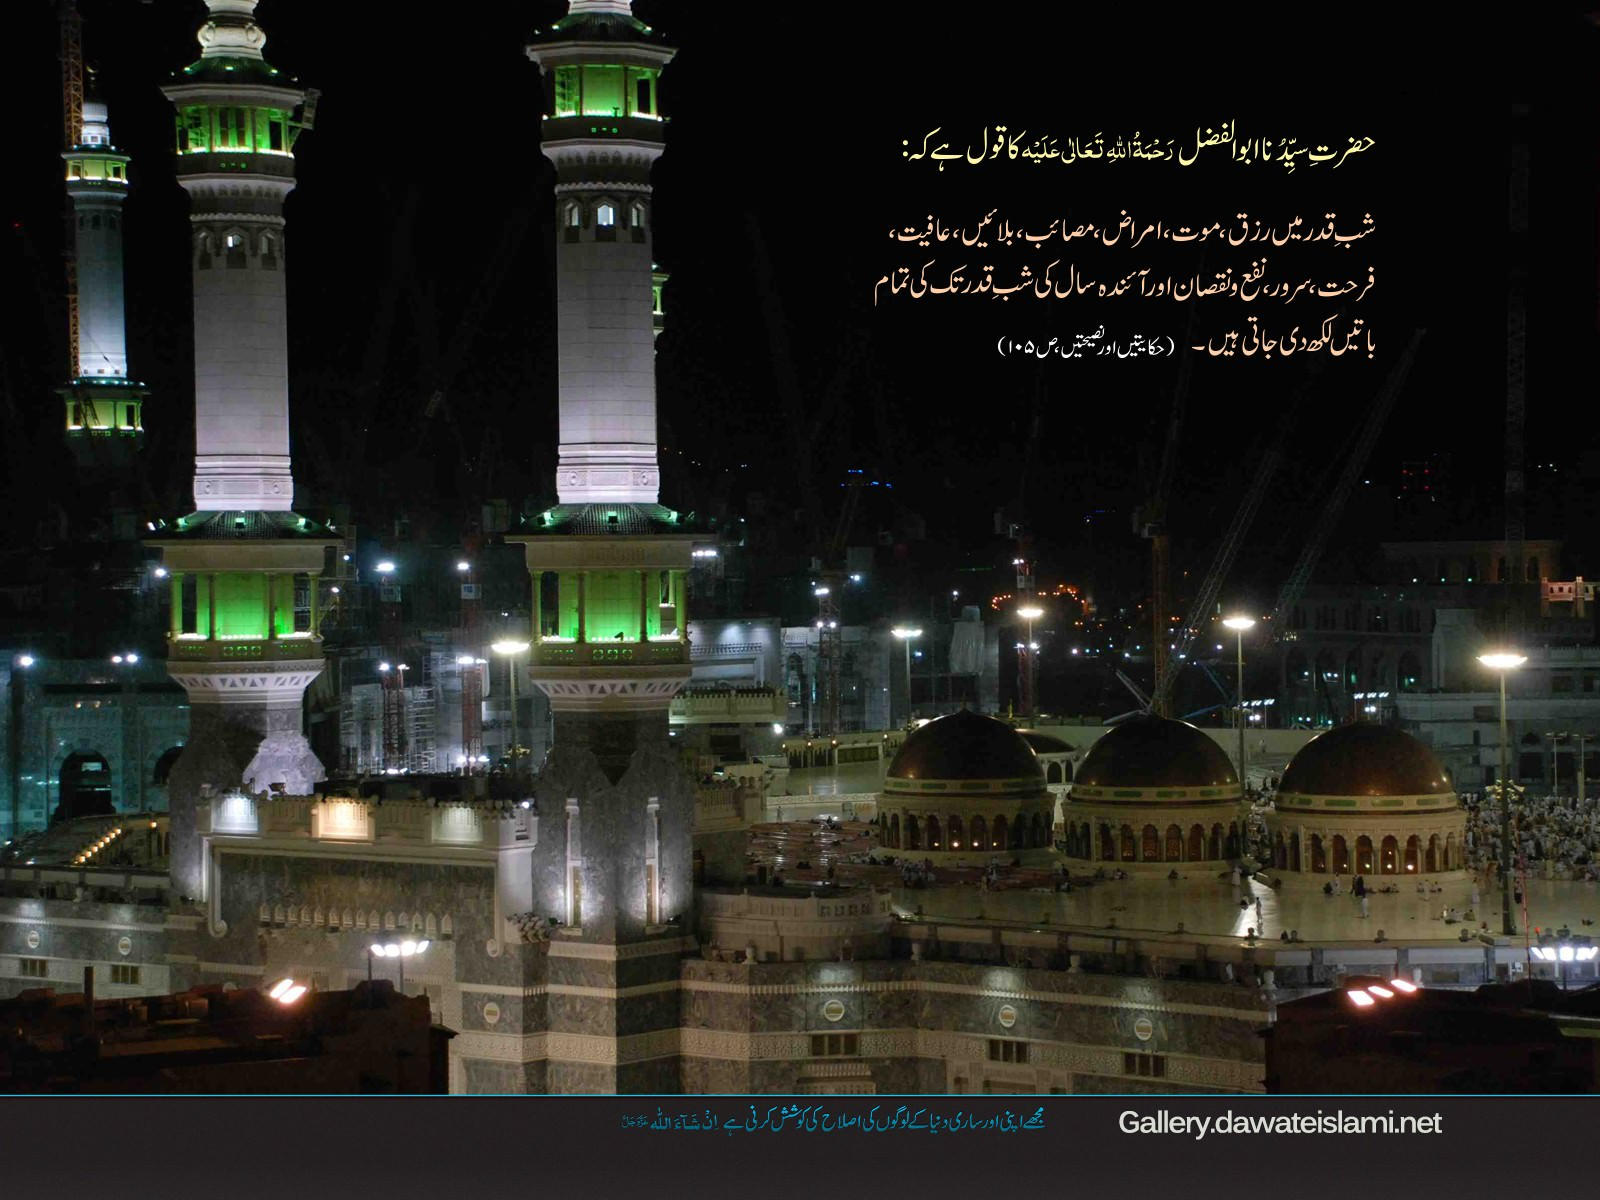 Shab e Qadr ki raat main tay honay walay mamlaat-Wallpaper